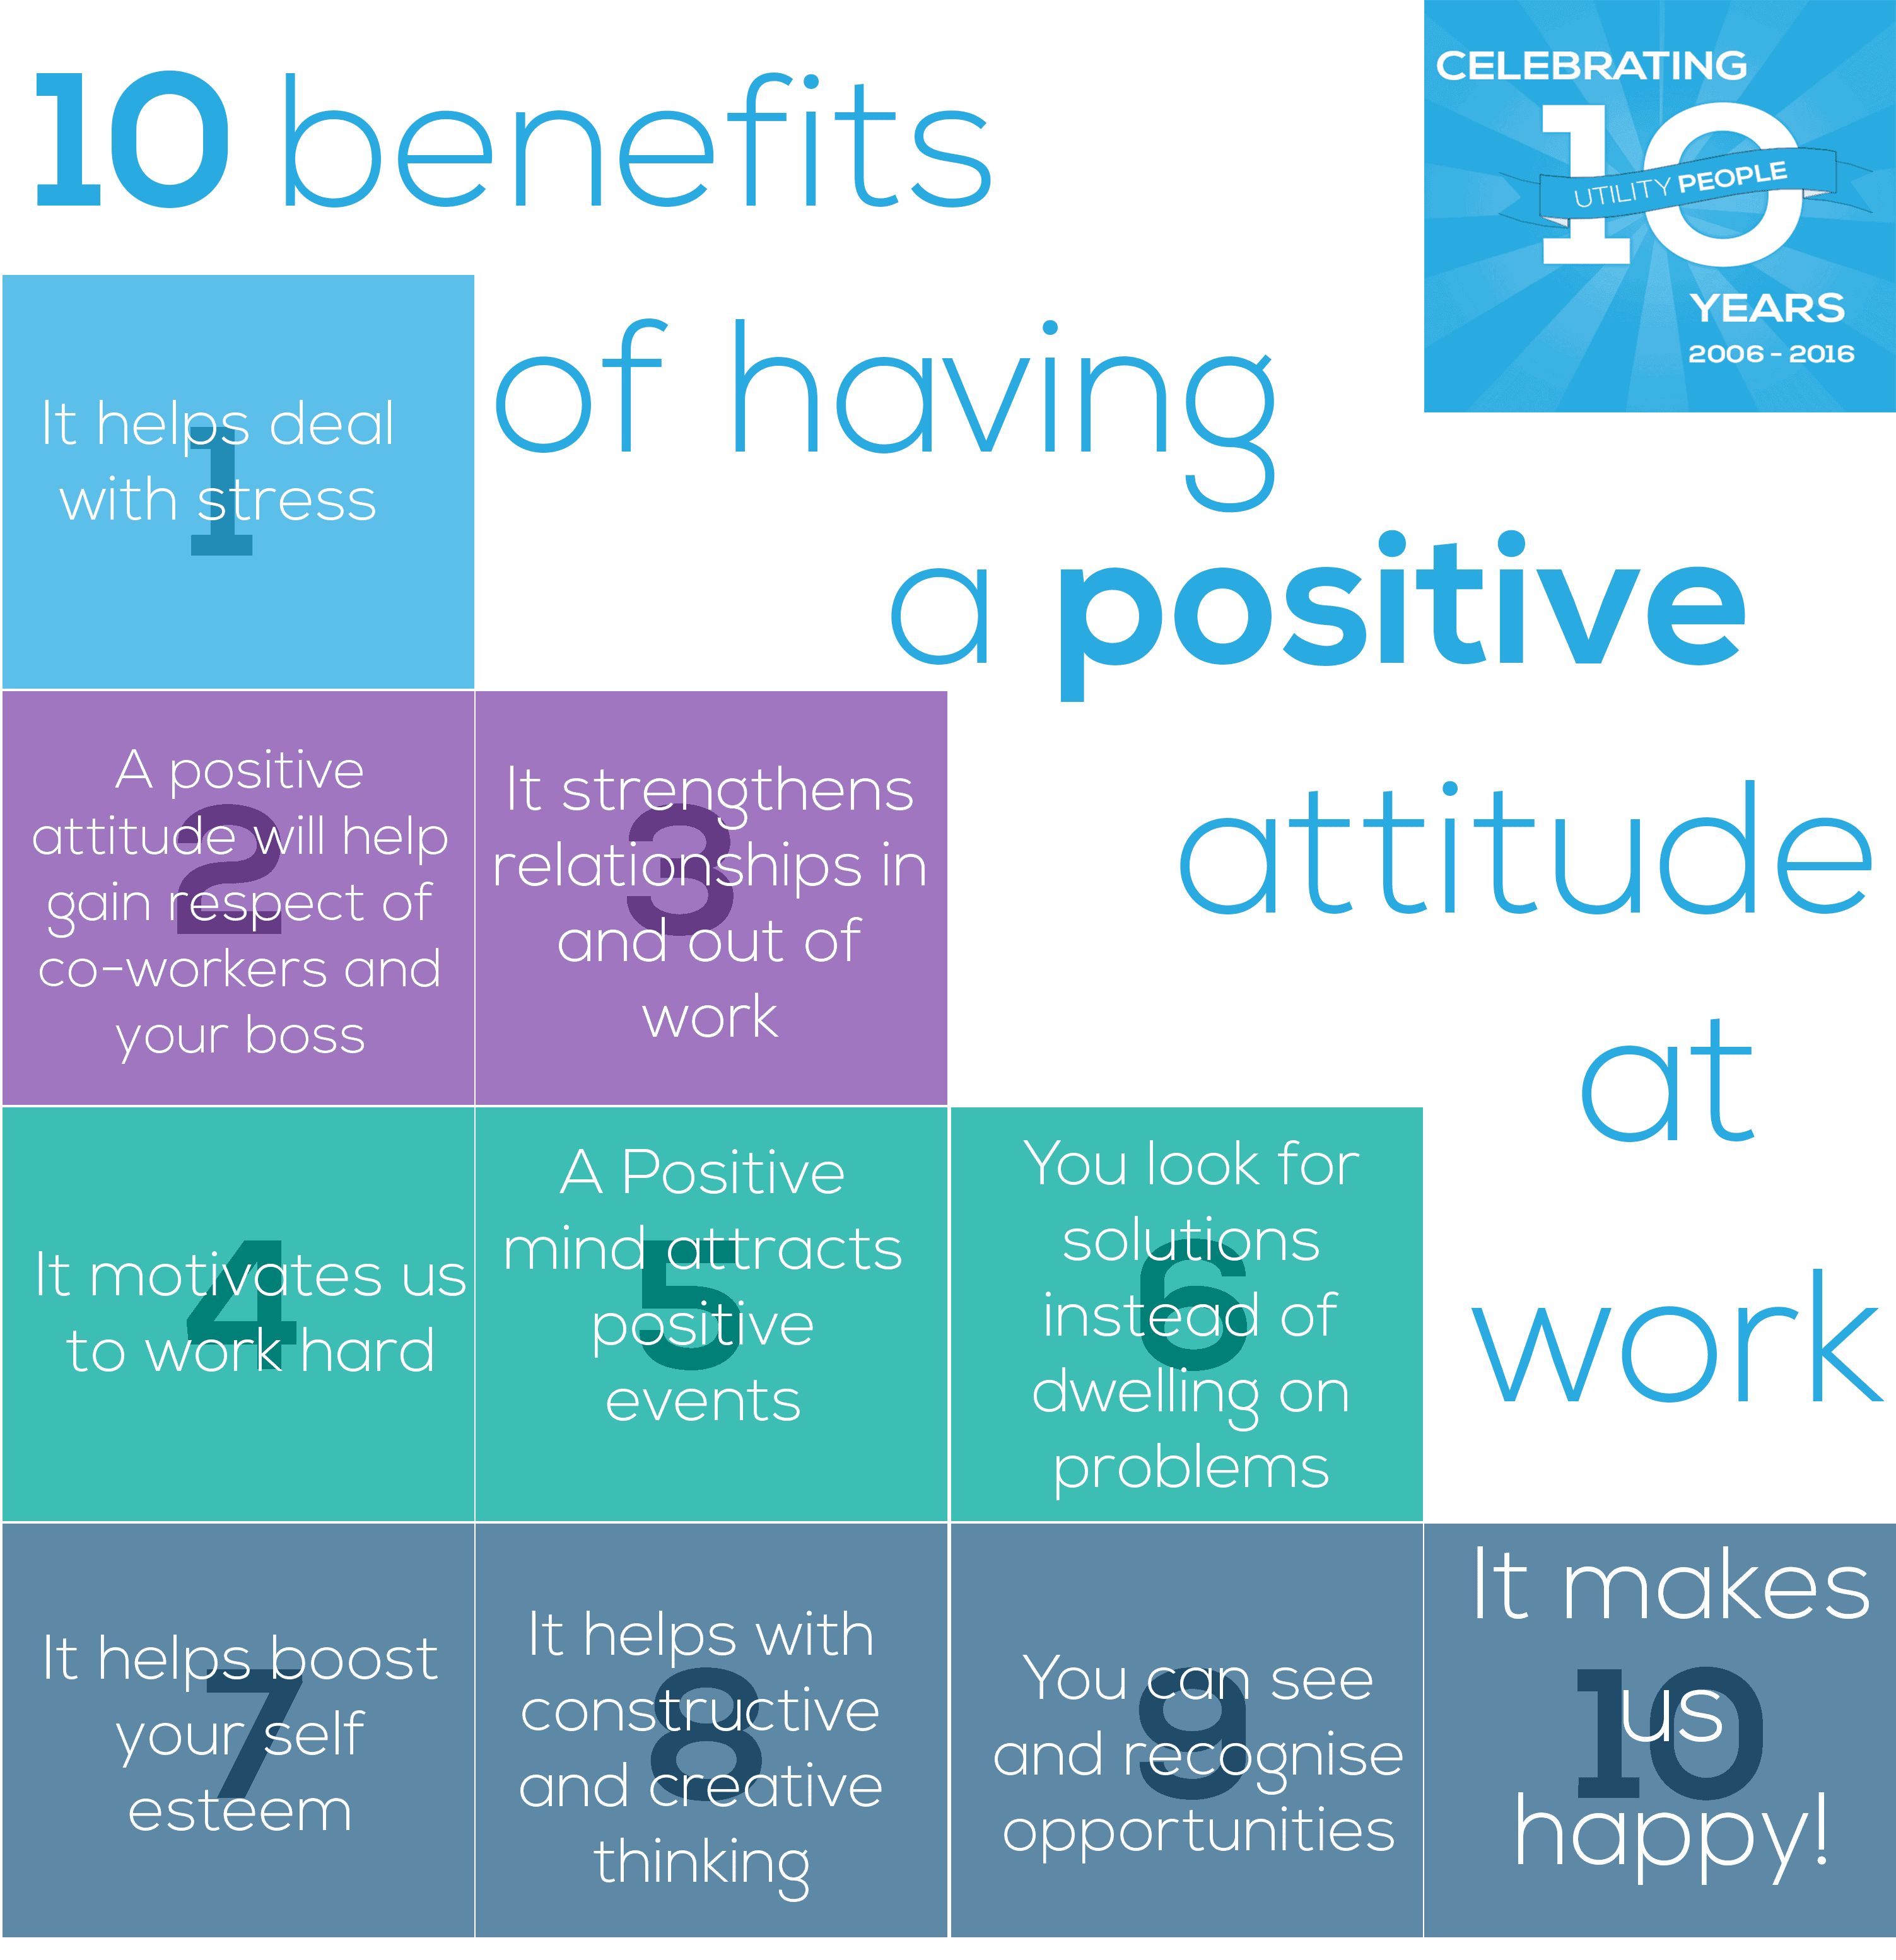 10 Benefits Of Having A Positive Attitude At Work